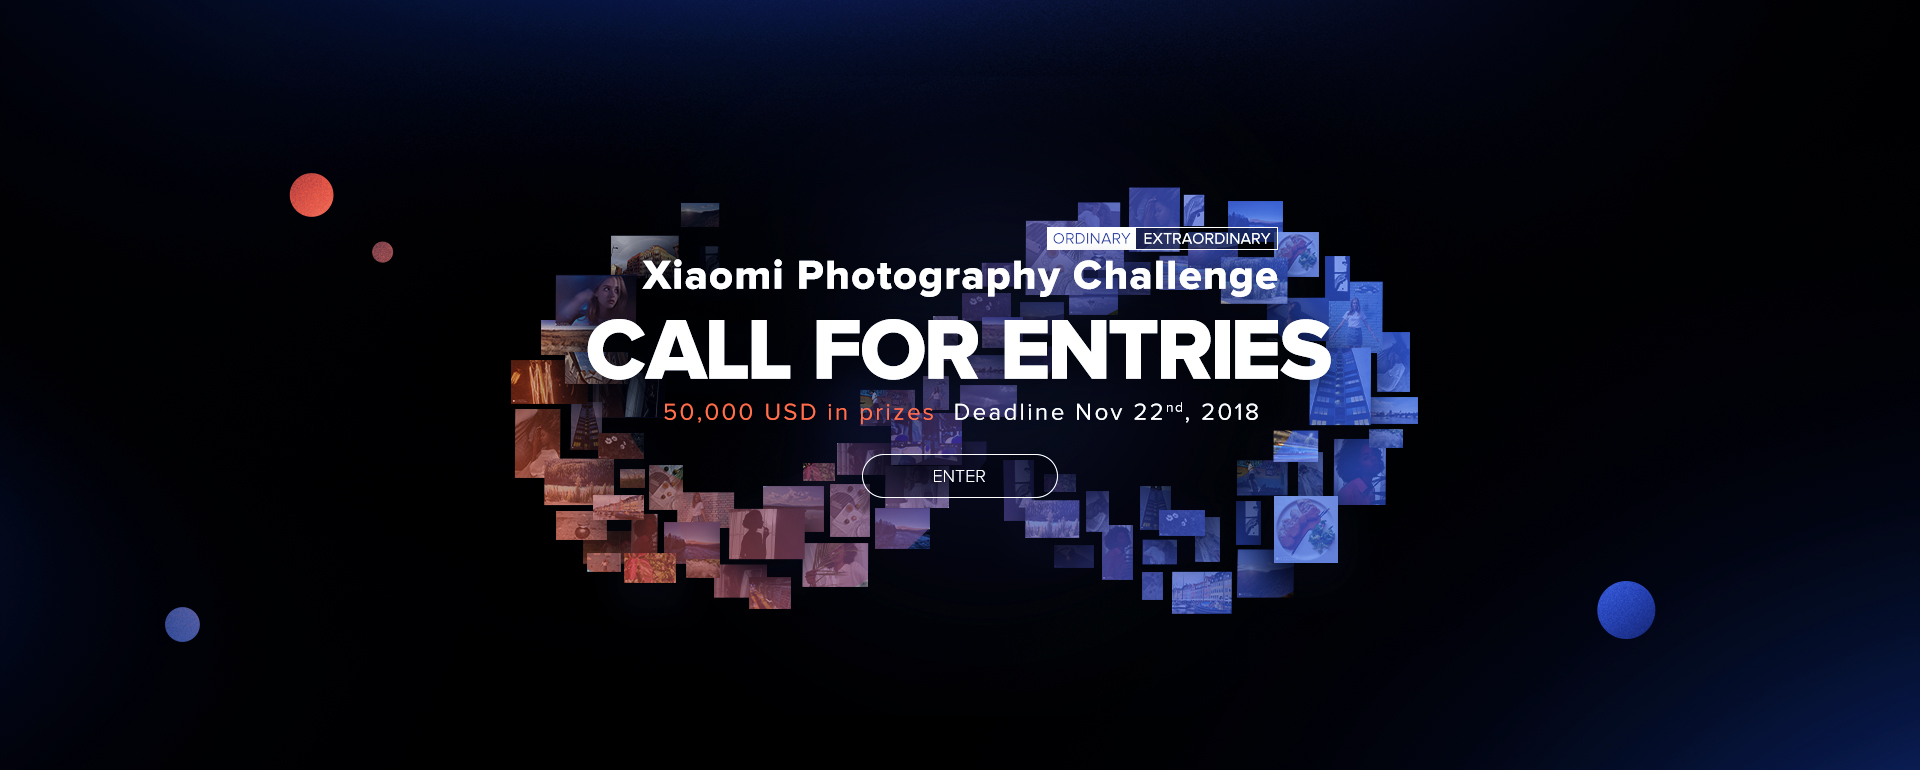 Xiaomi Photography Challenge